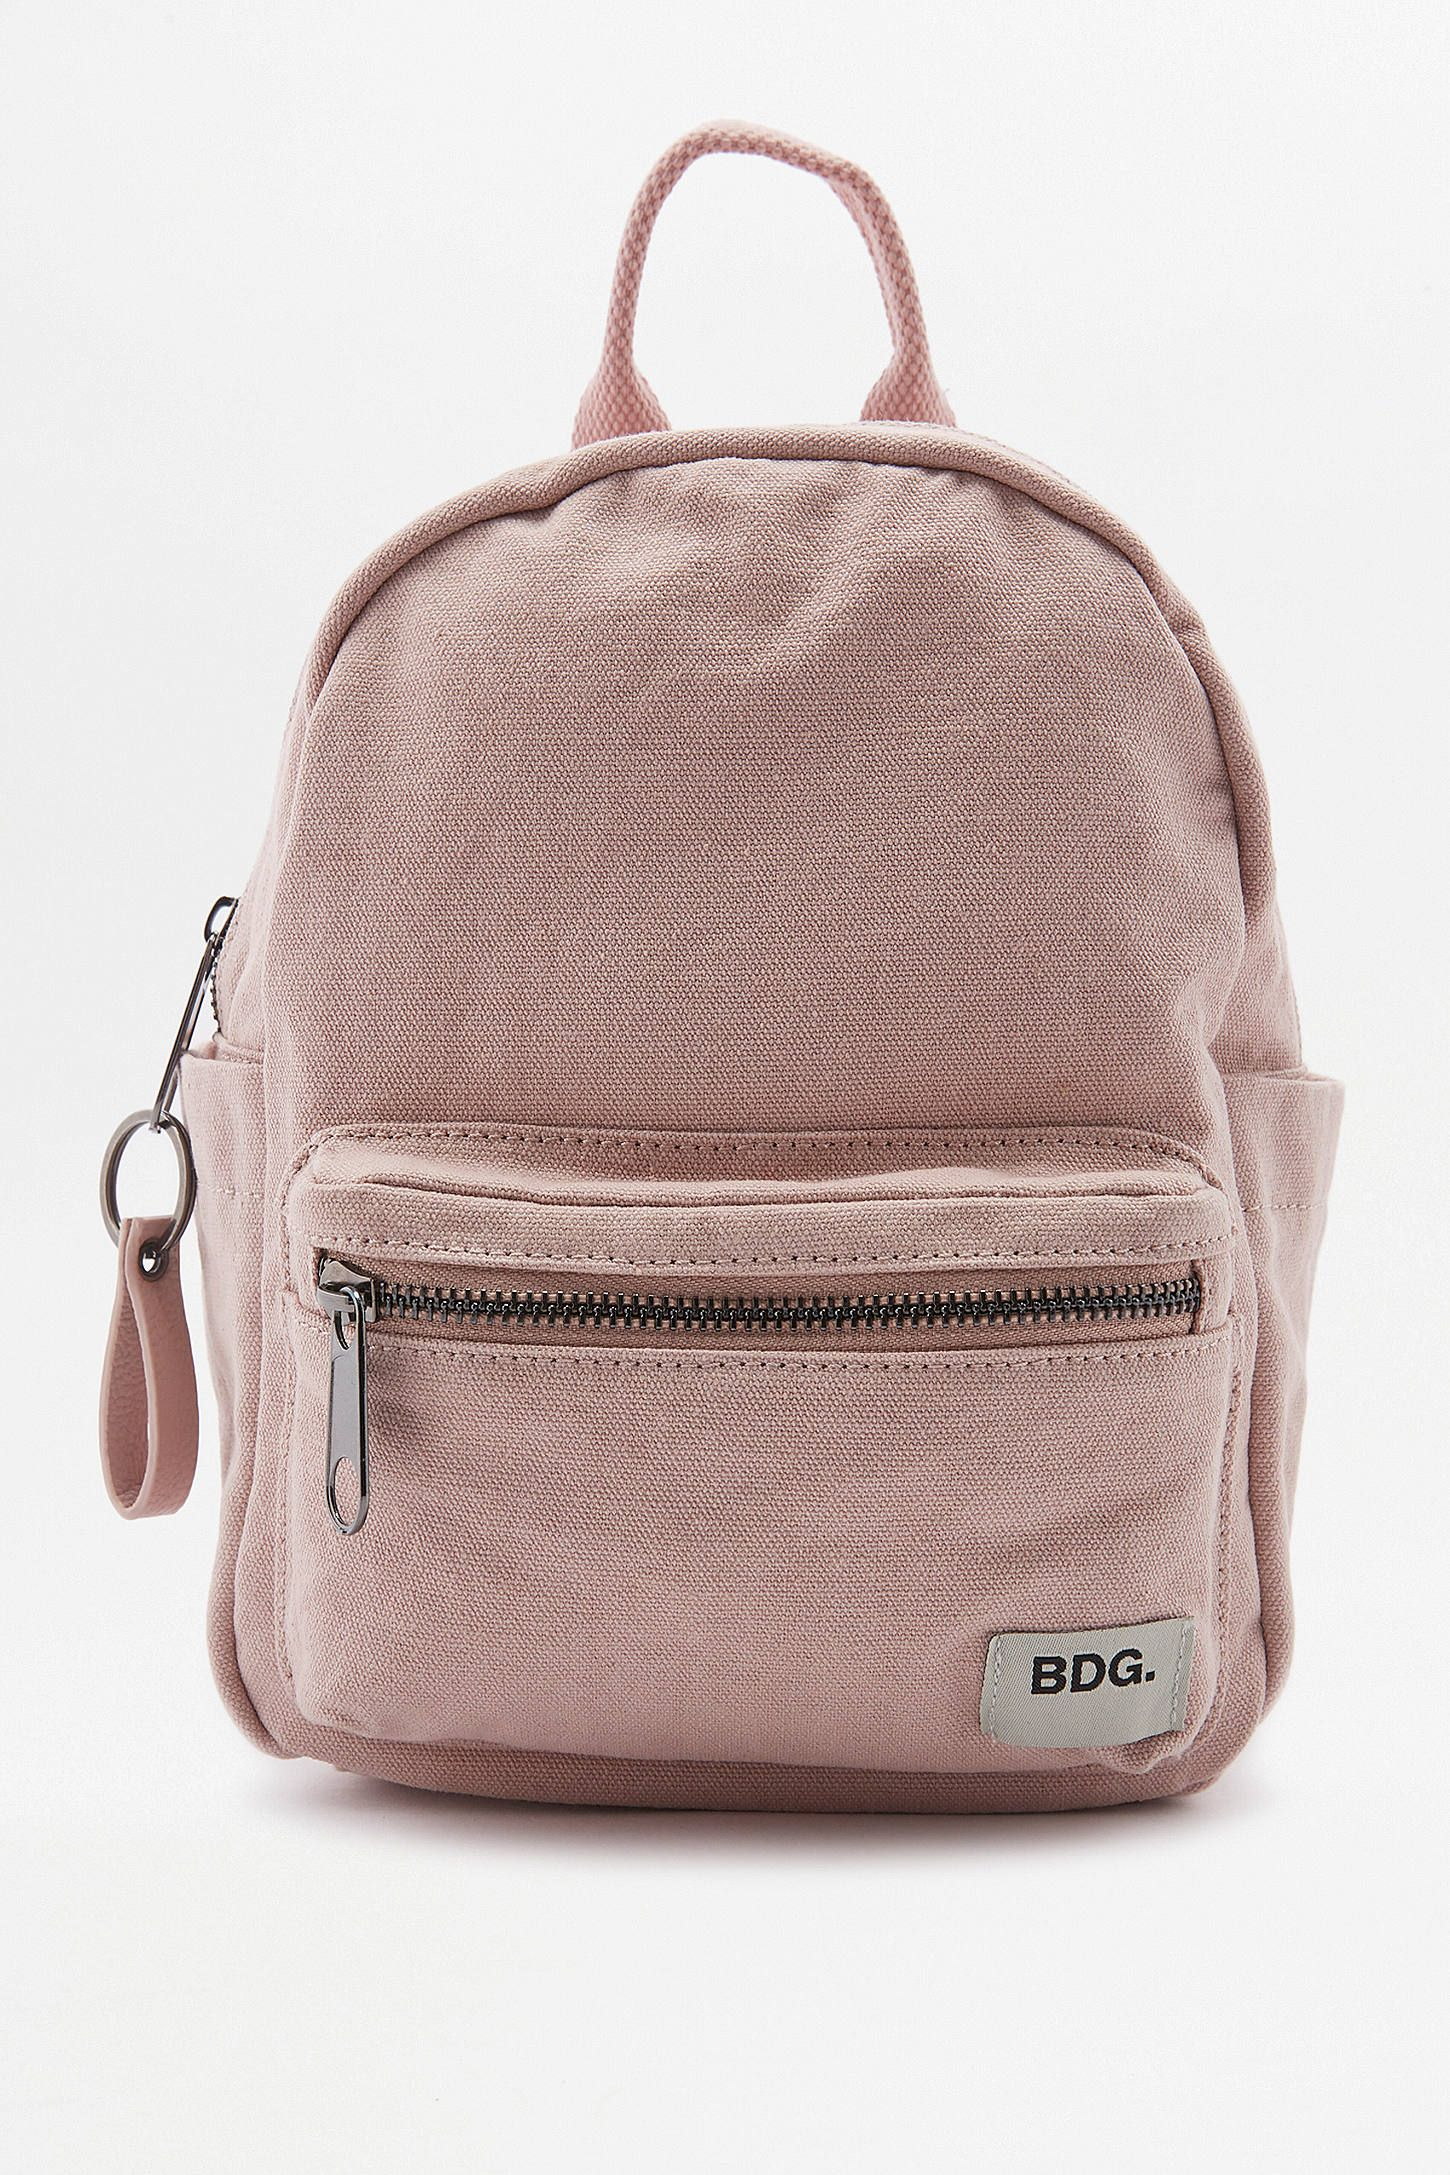 2345f6a3d Slide View: 1: BDG Canvas Mini Backpack #fashionbackpacks Backpack Purse,  Fashion Backpack